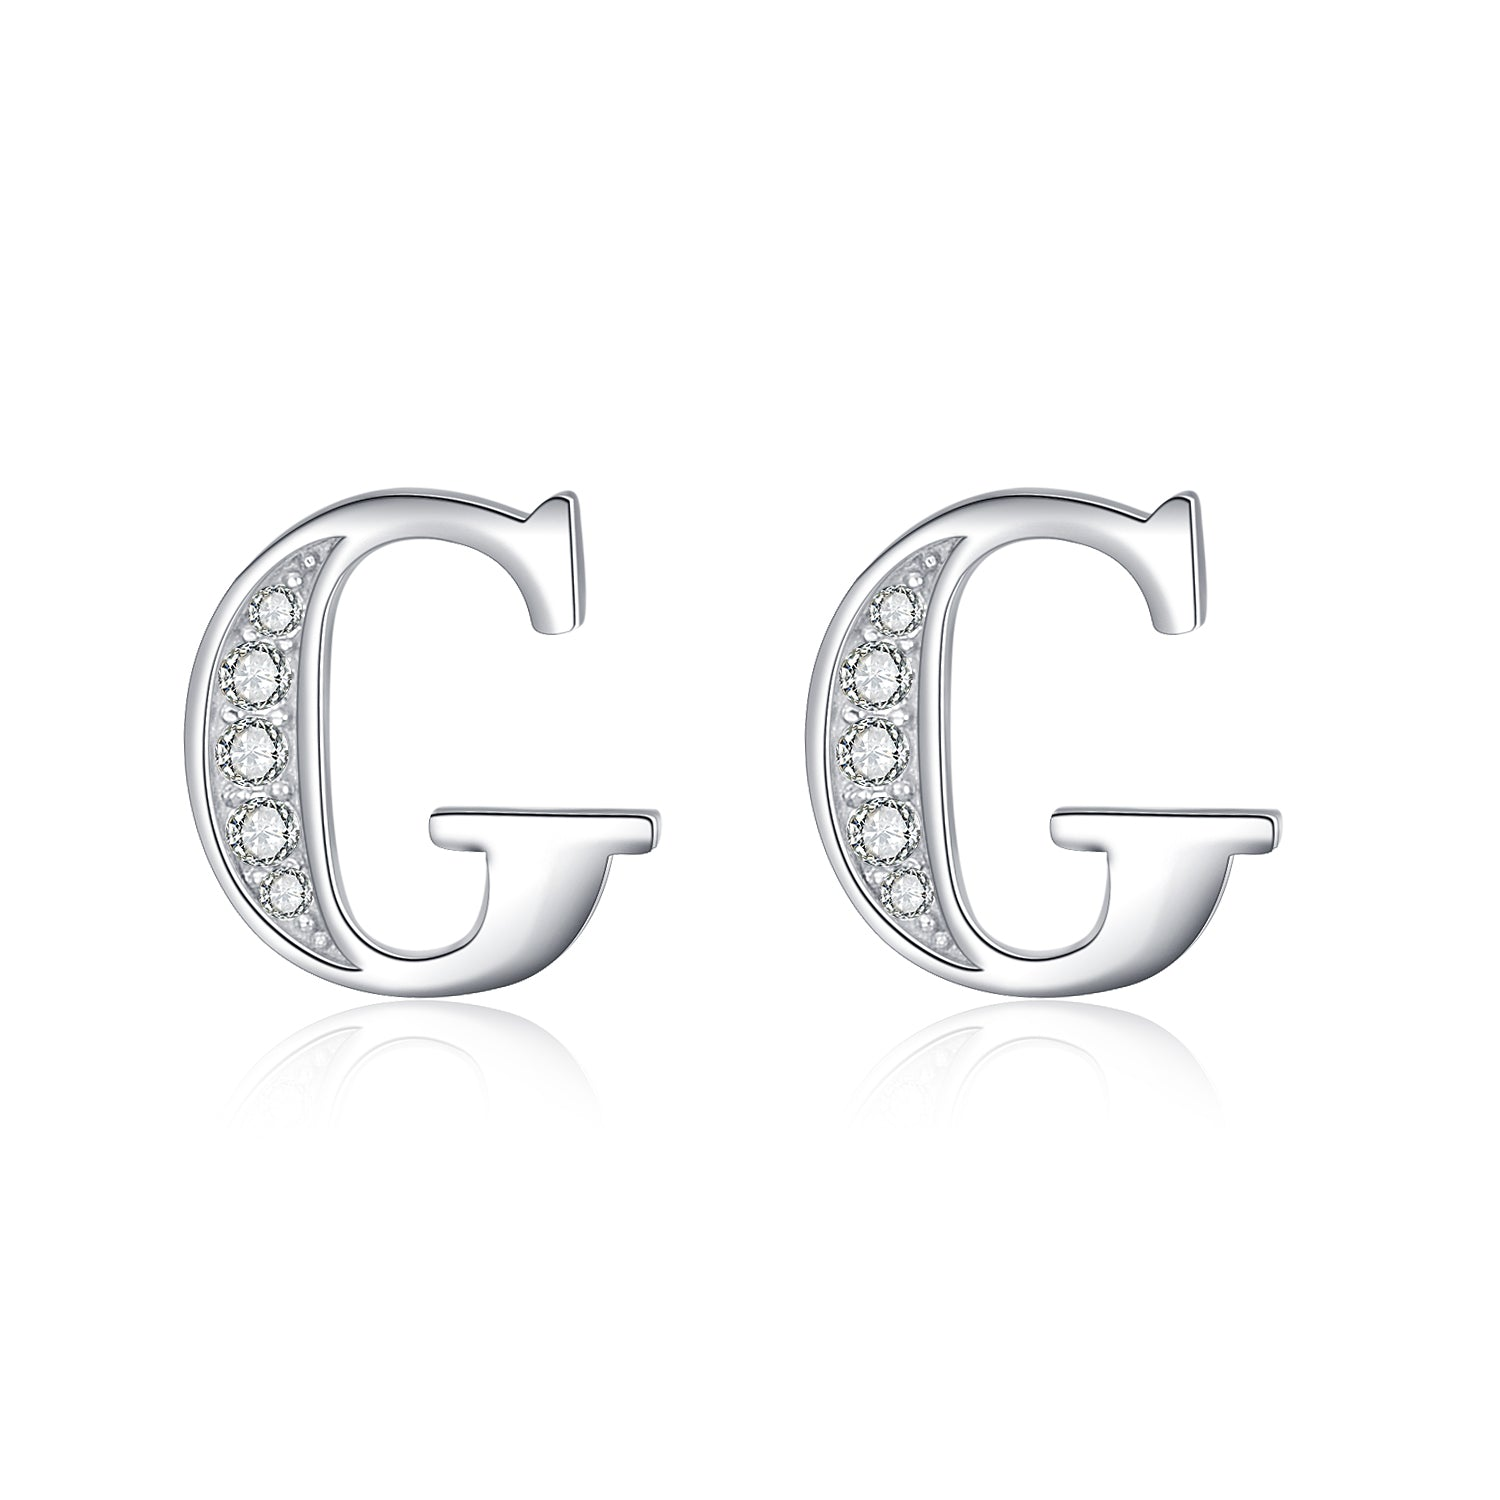 New Design Hot Selling Fashion 925 Sterling Silver Alphabet Stud Earring